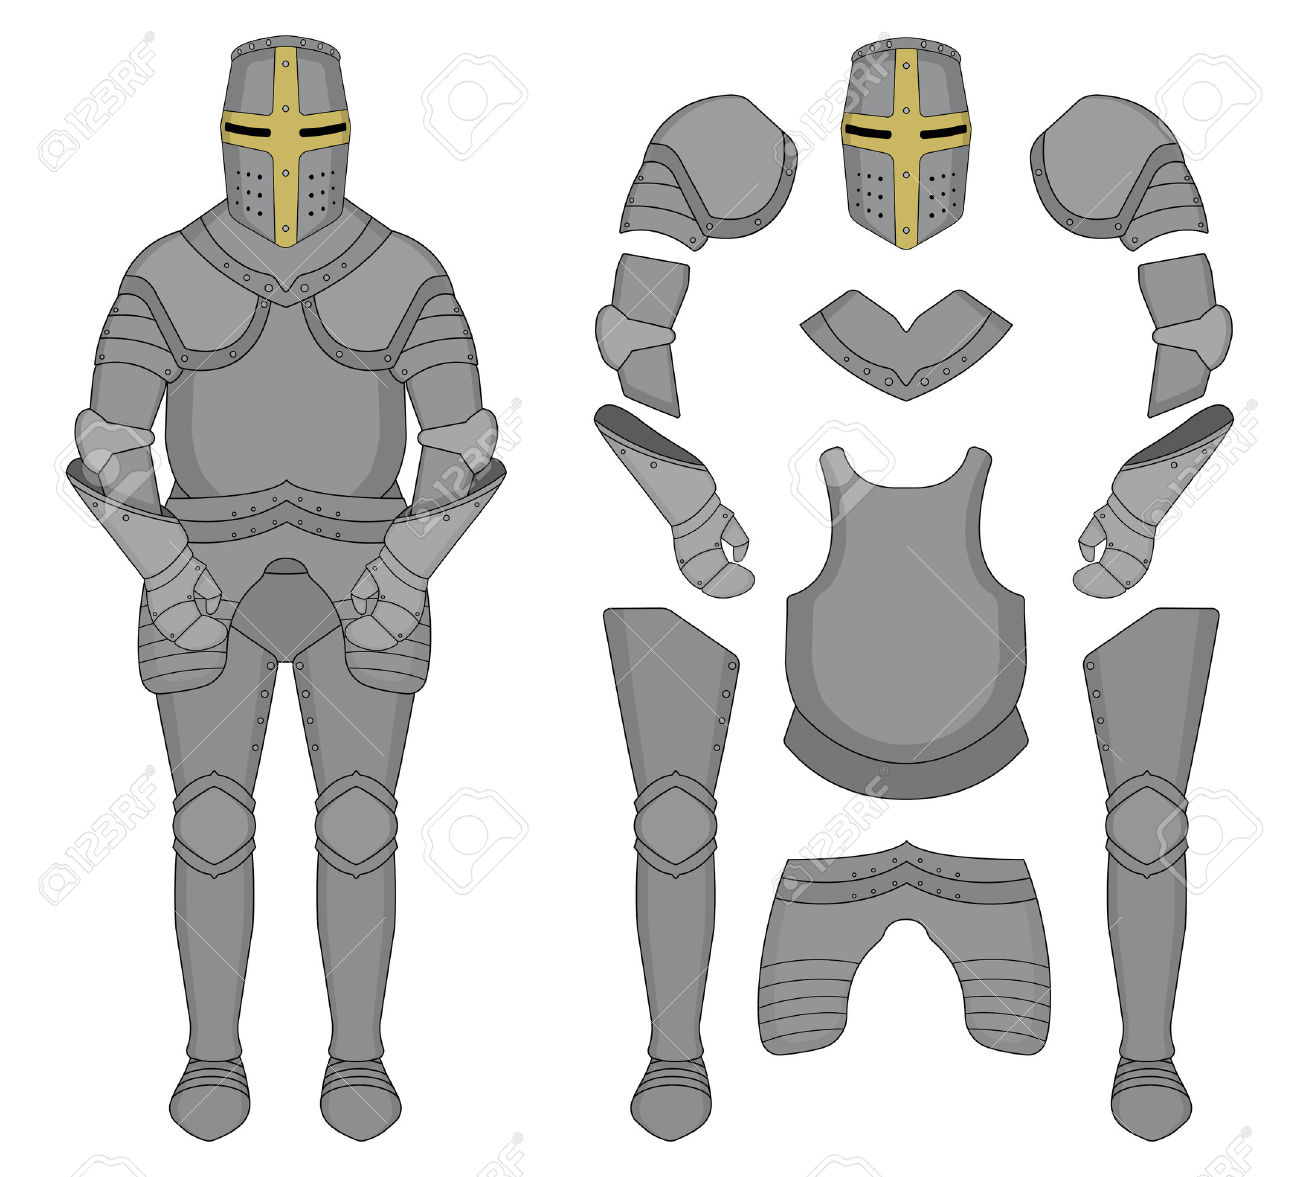 Armor clipart #3, Download drawings